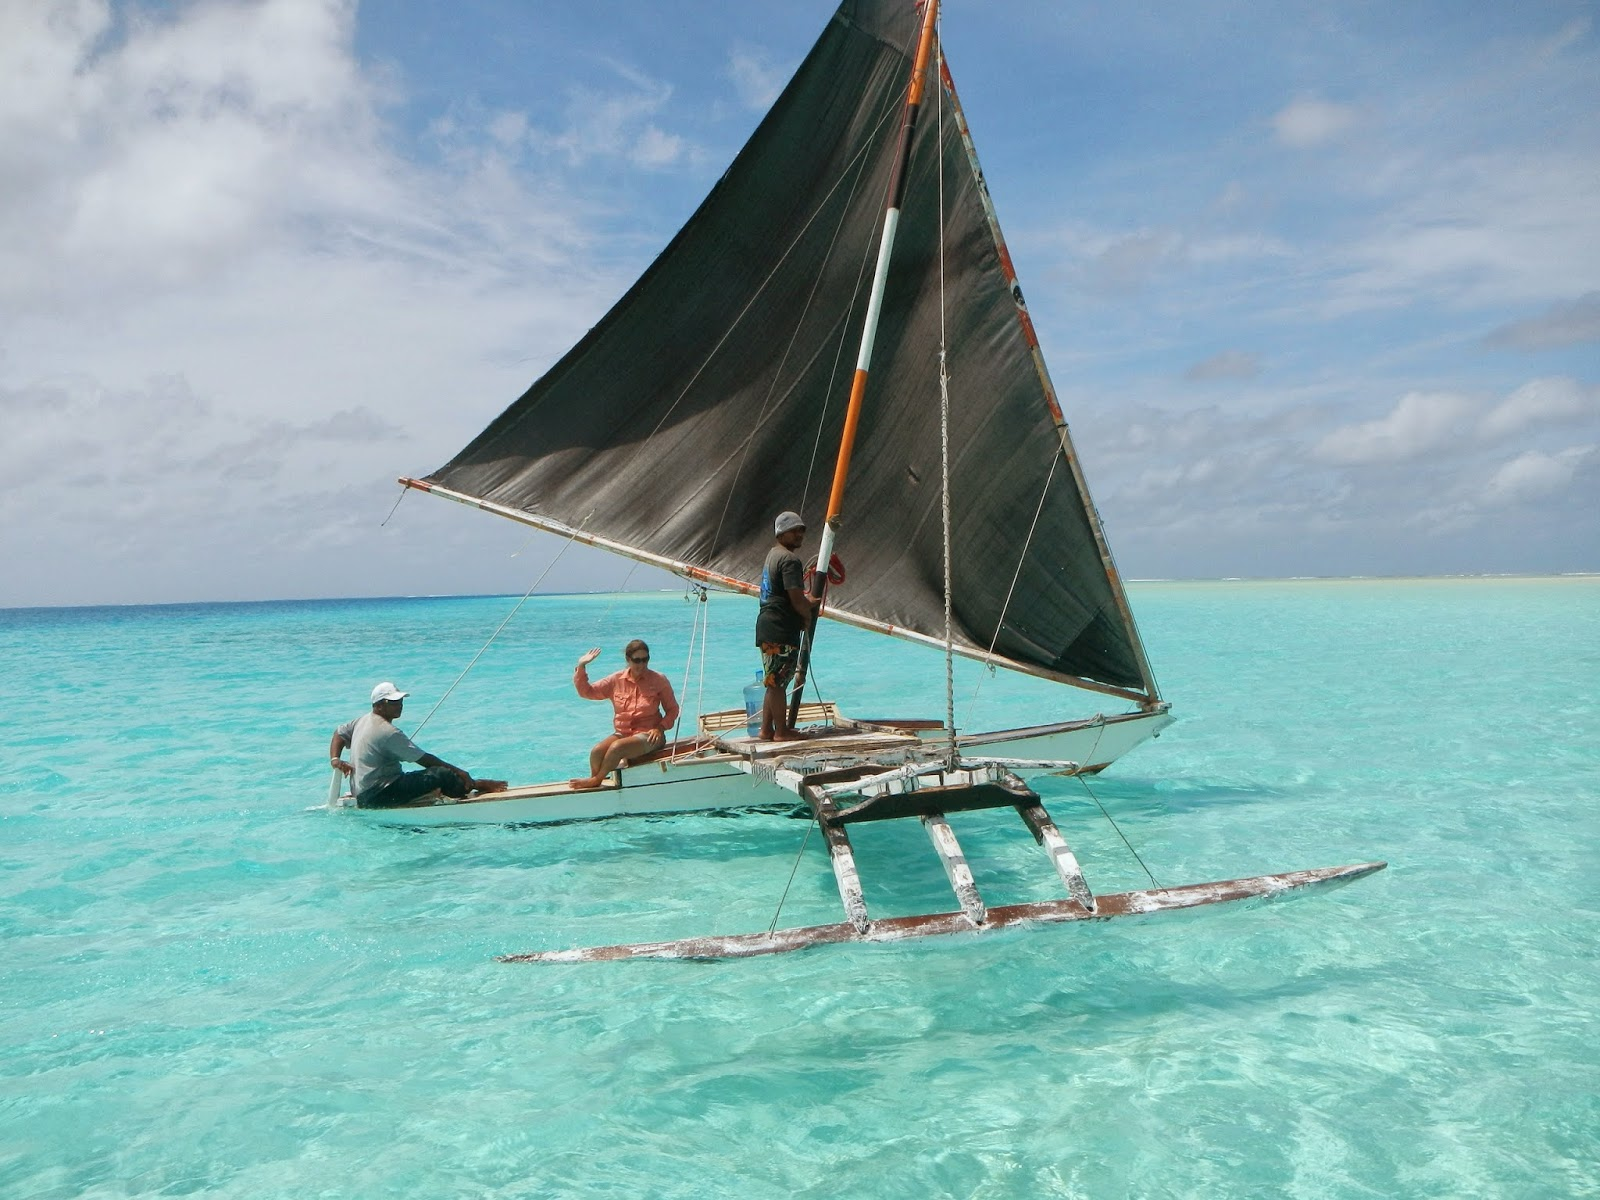 A small outrigger sailing canoe, seen in the waters off Fiji.